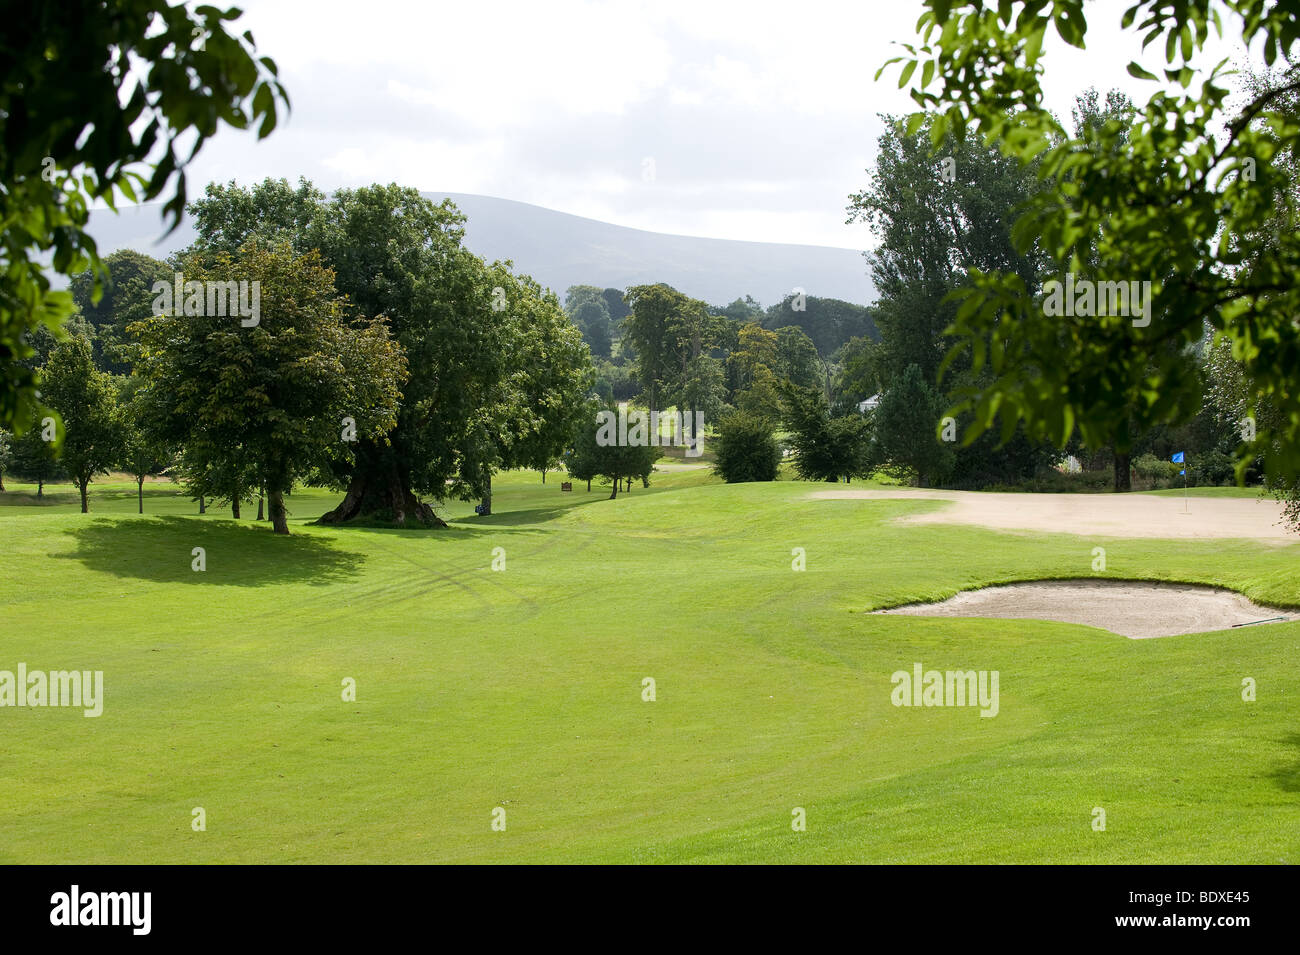 Golf course and mountains in a summer time - Stock Image